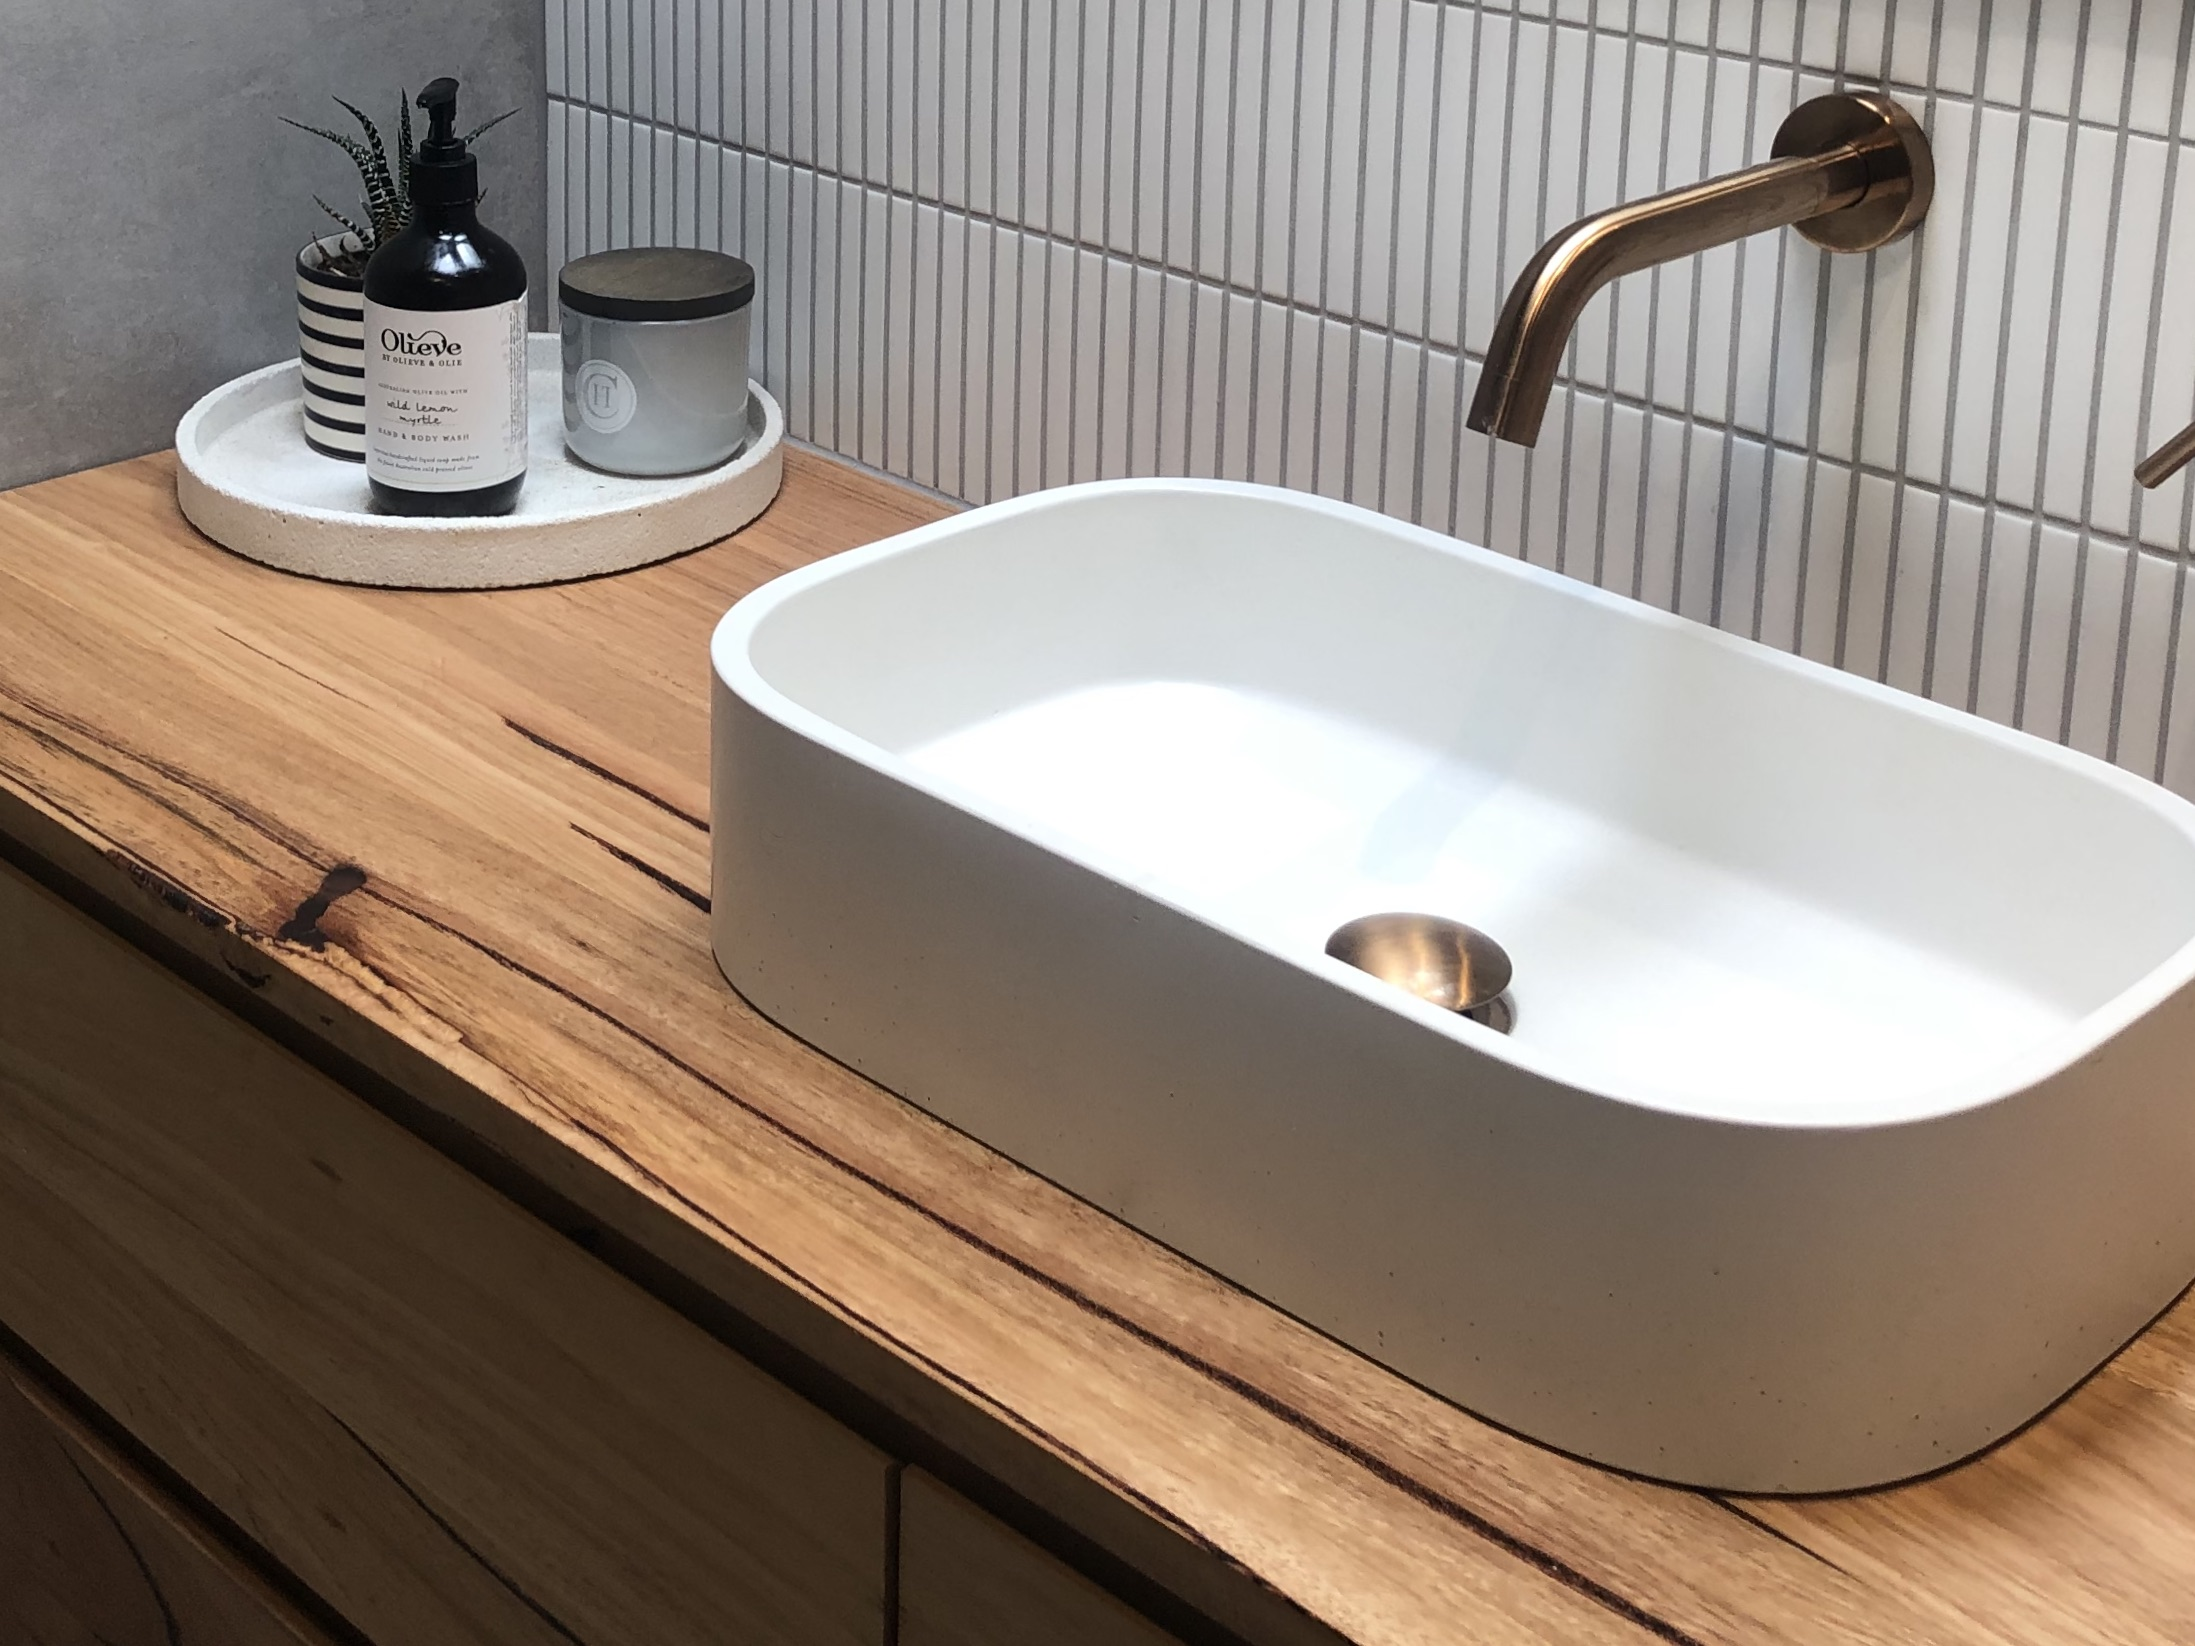 New master ensuite, vignette of basin with brushed brass taps